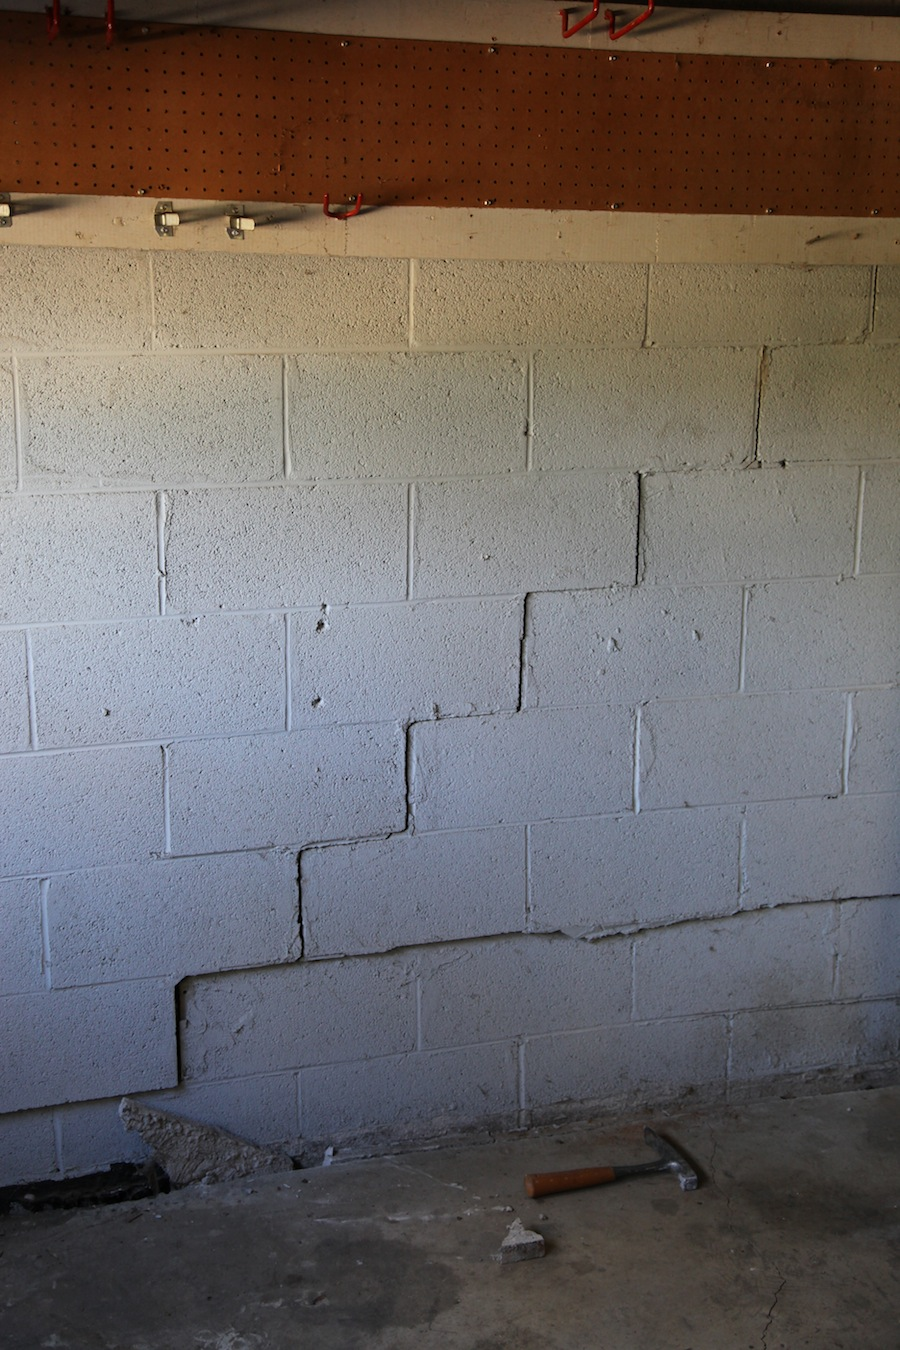 Stair Step cracks are seen here in this basement wall, which indicates the foundation is settling.